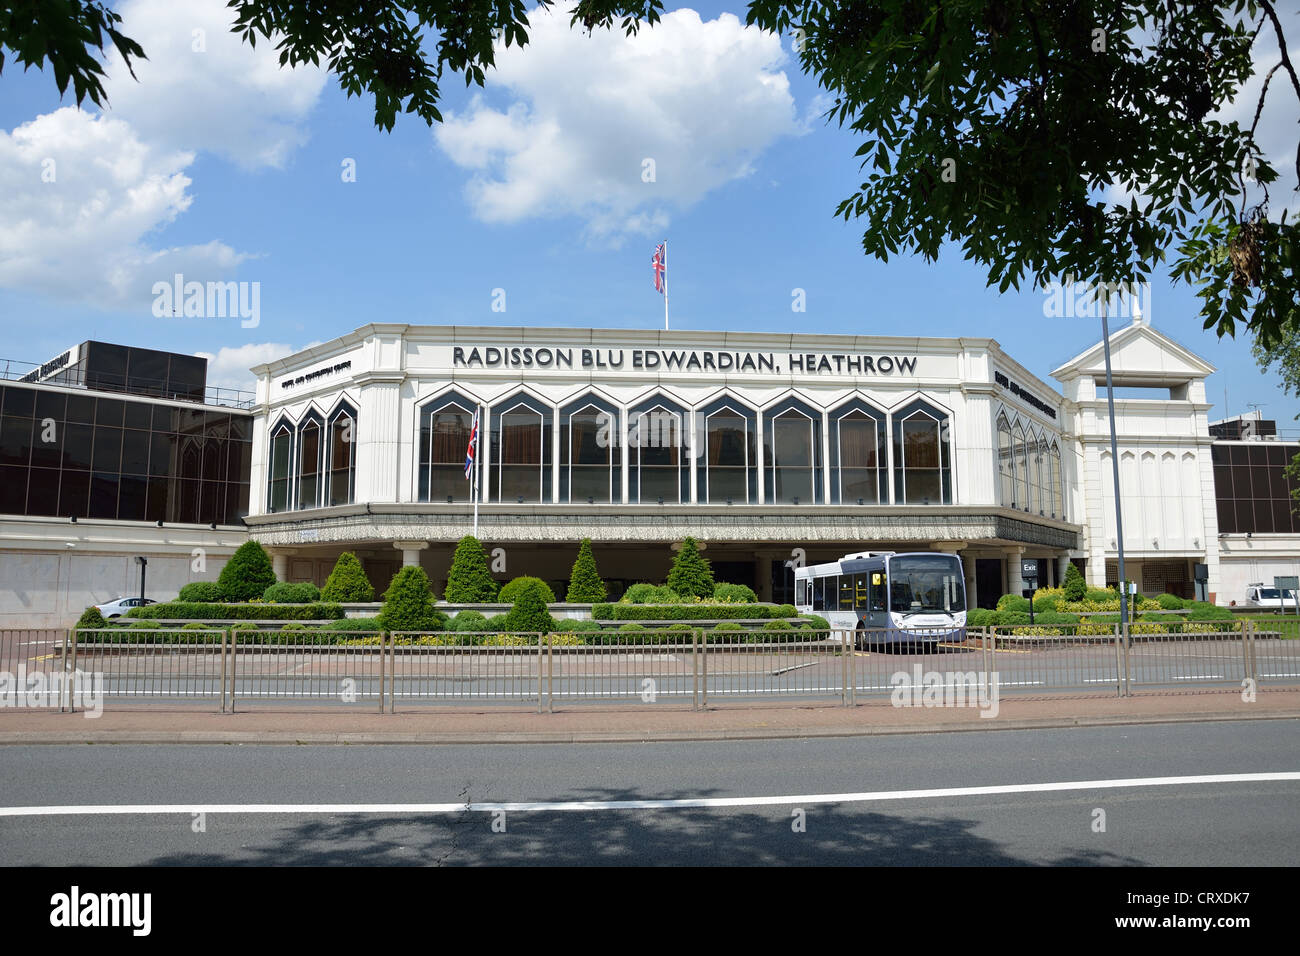 Radisson Blu Edwardian Hotel, Bath Road, Heathrow Airport, London Borough of Hounslow, Greater London, England, - Stock Image